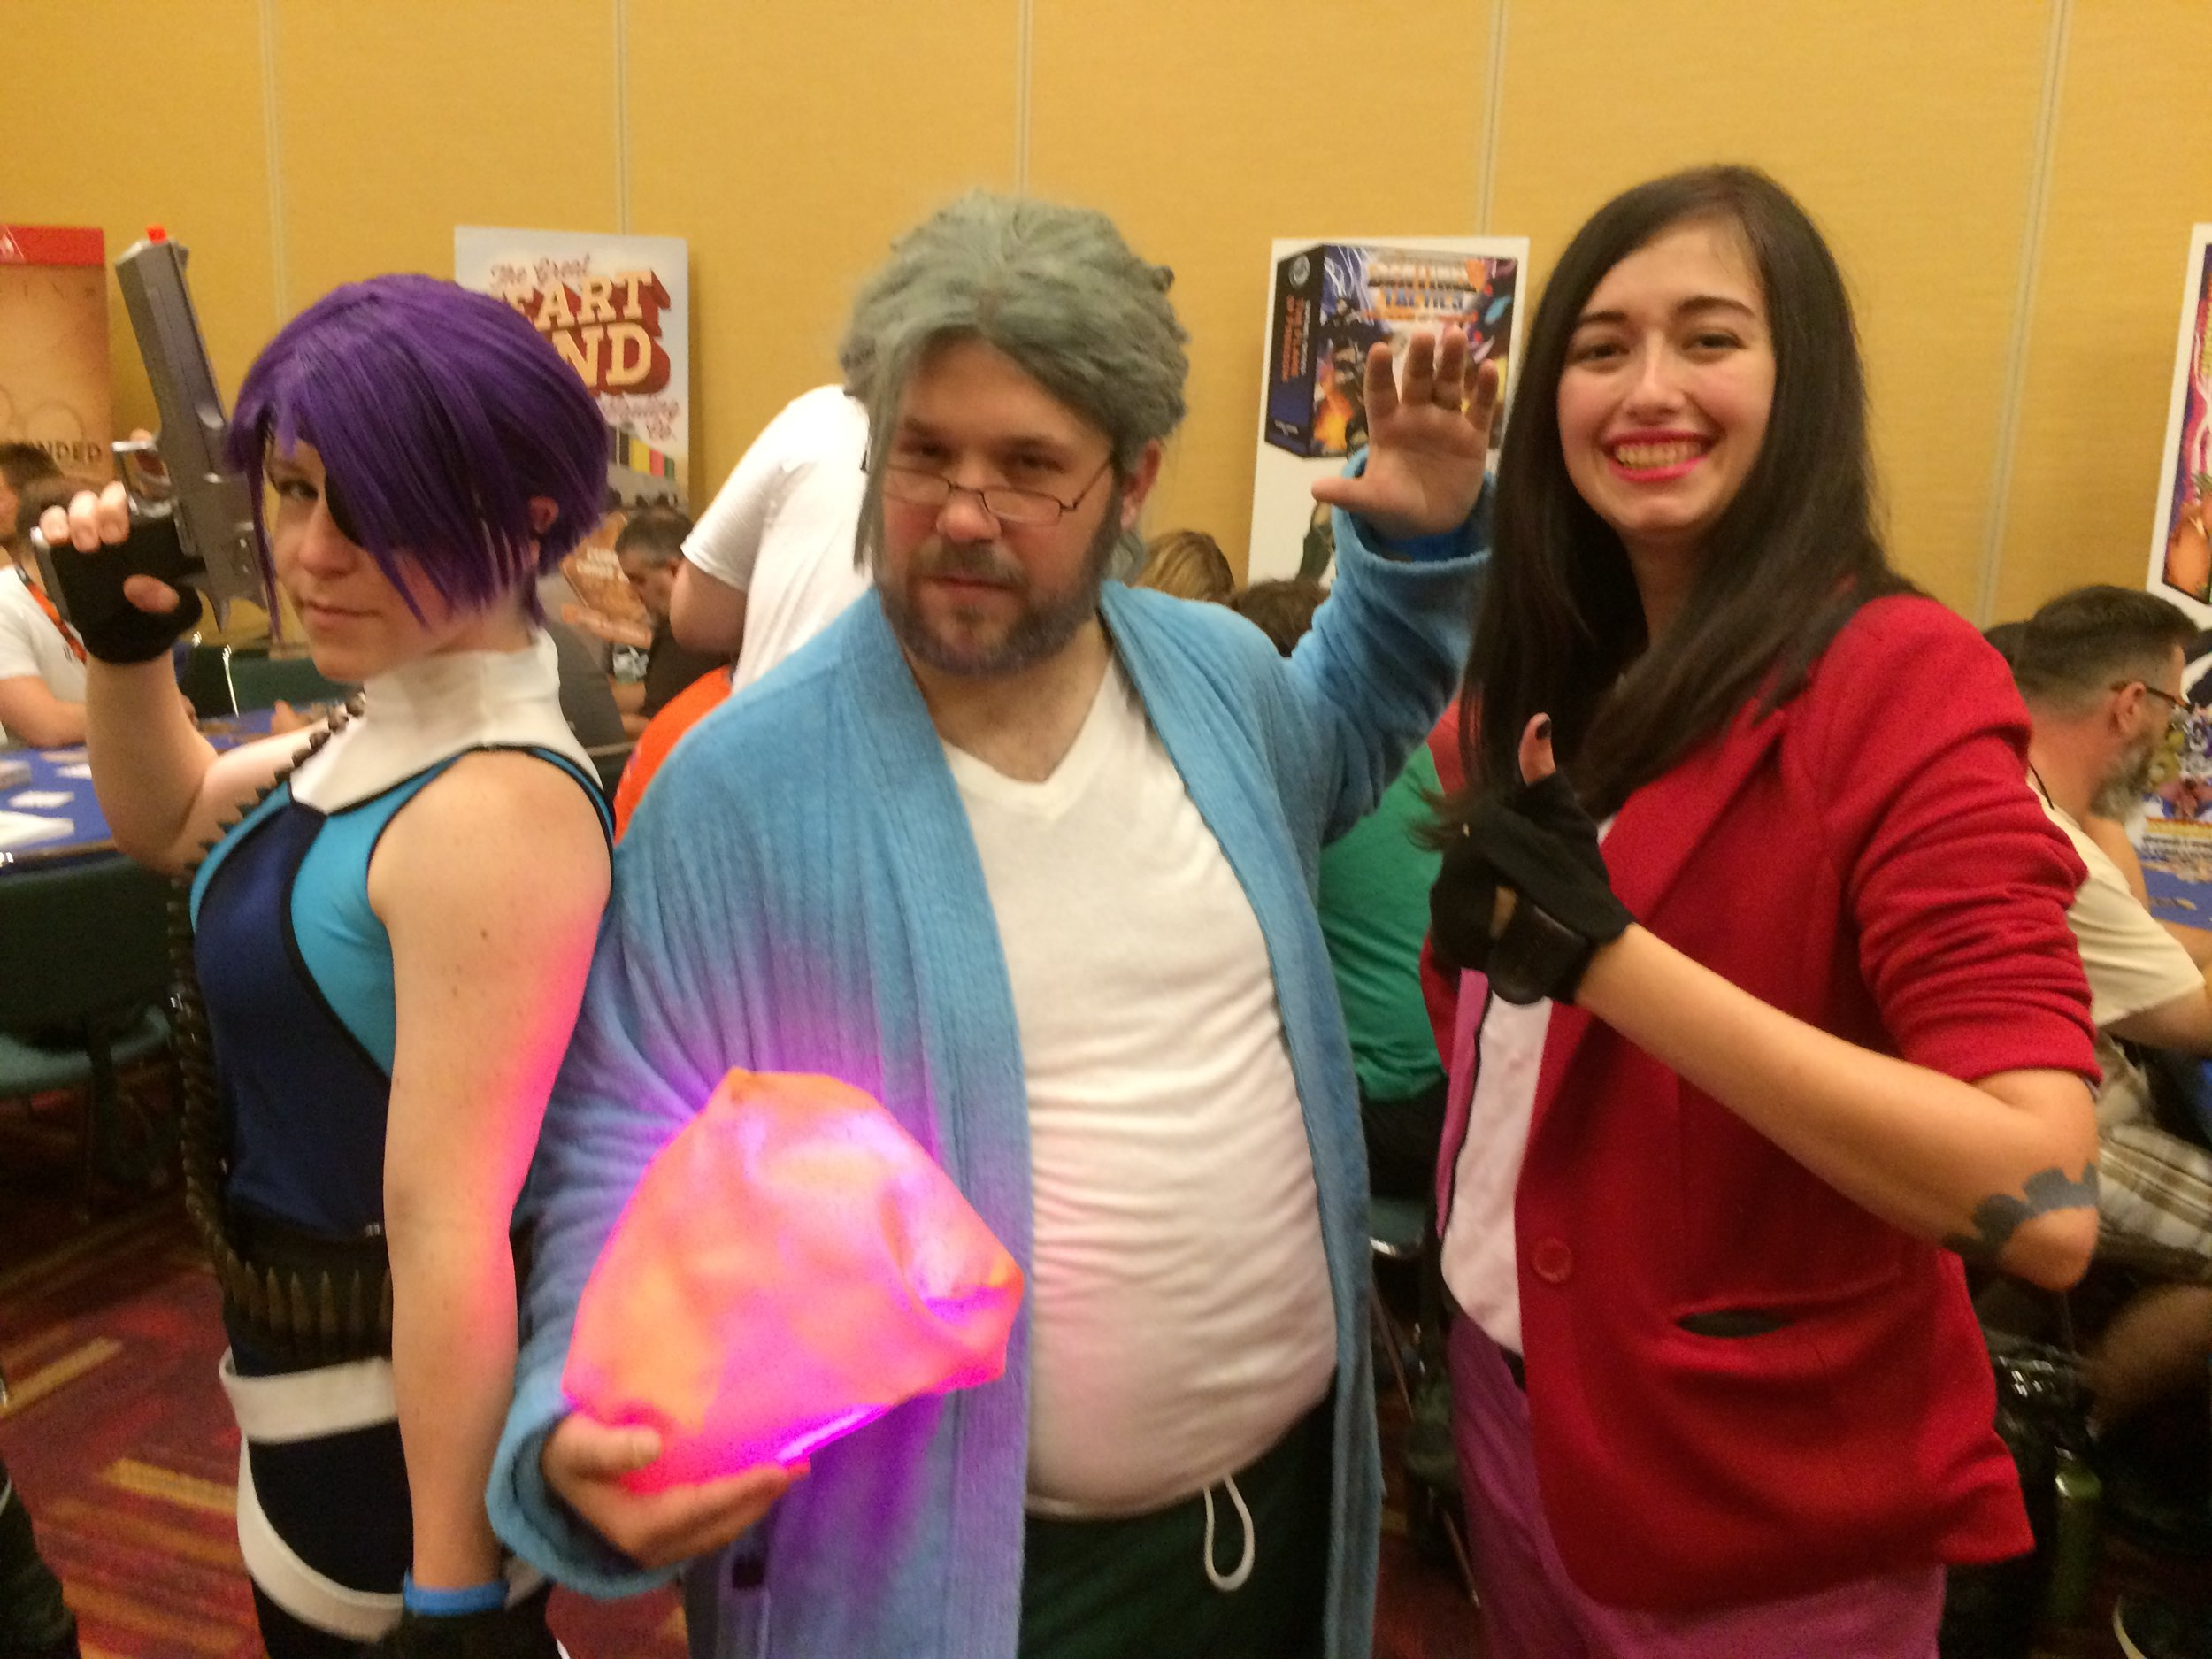 GenCon 2016 - Expatriette, The Scholar, and Friction